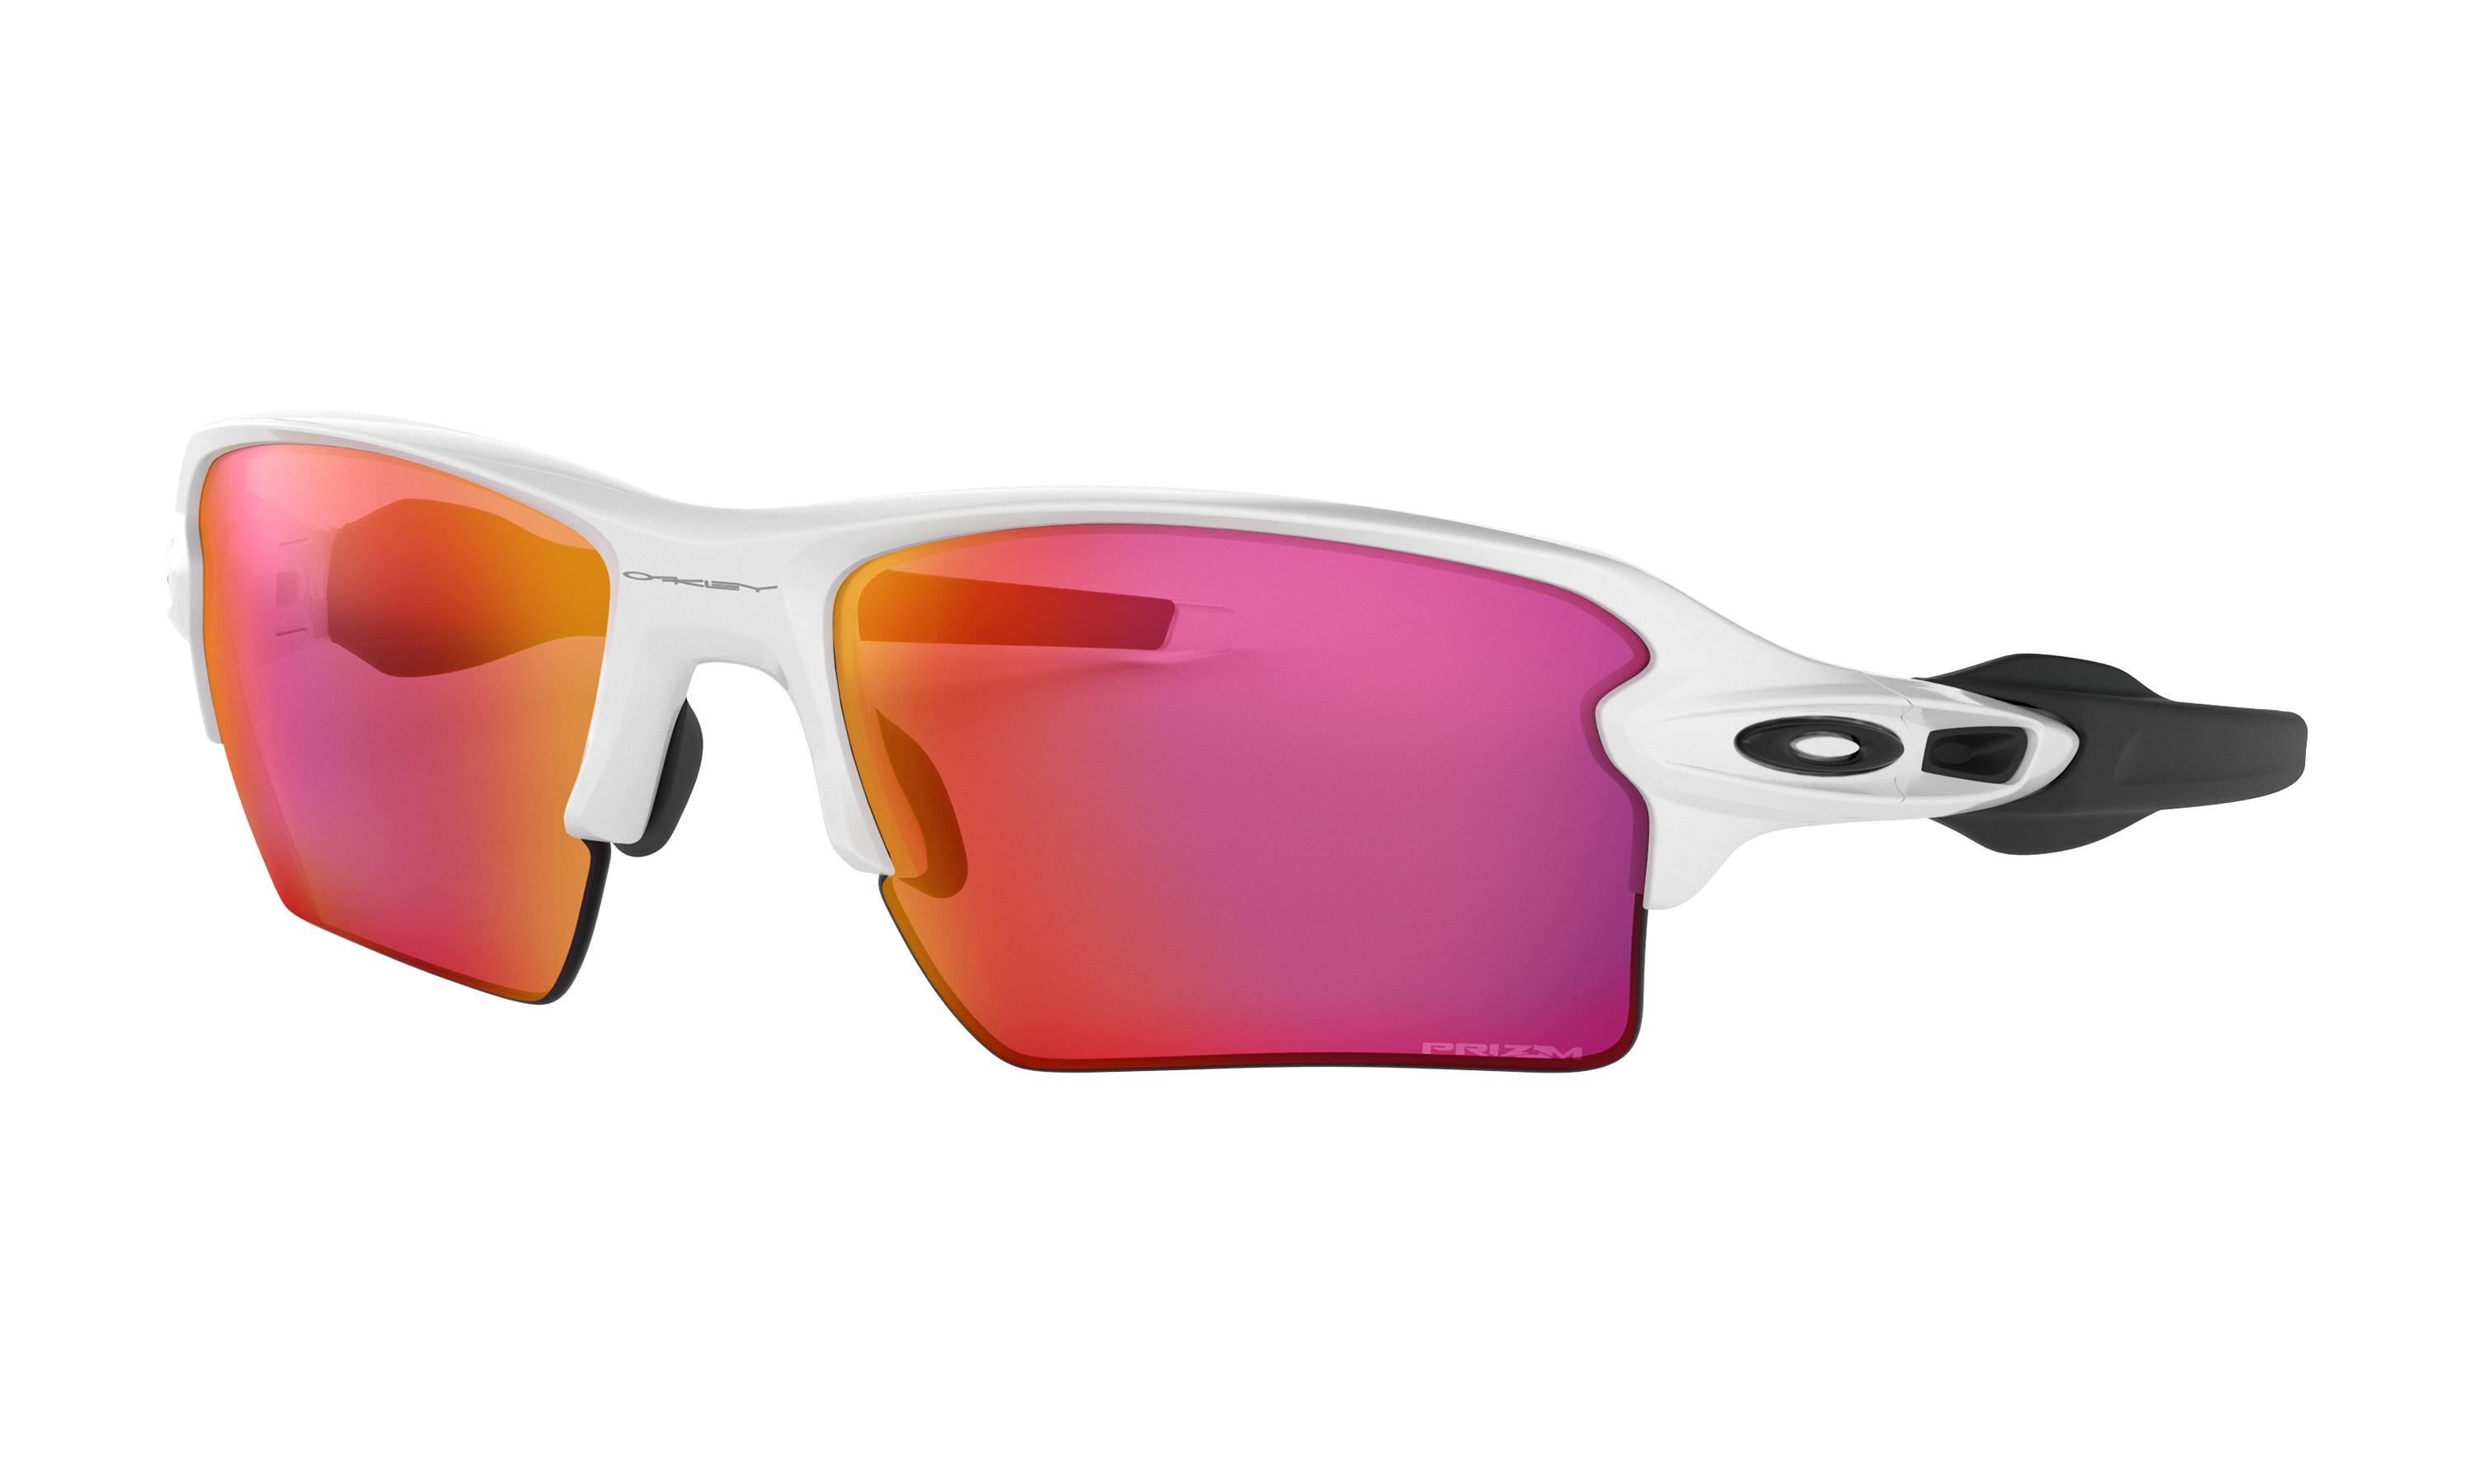 739fc7a4b2c98 Oakley® Flak 2.0 XL - PRIZM Prescription Available